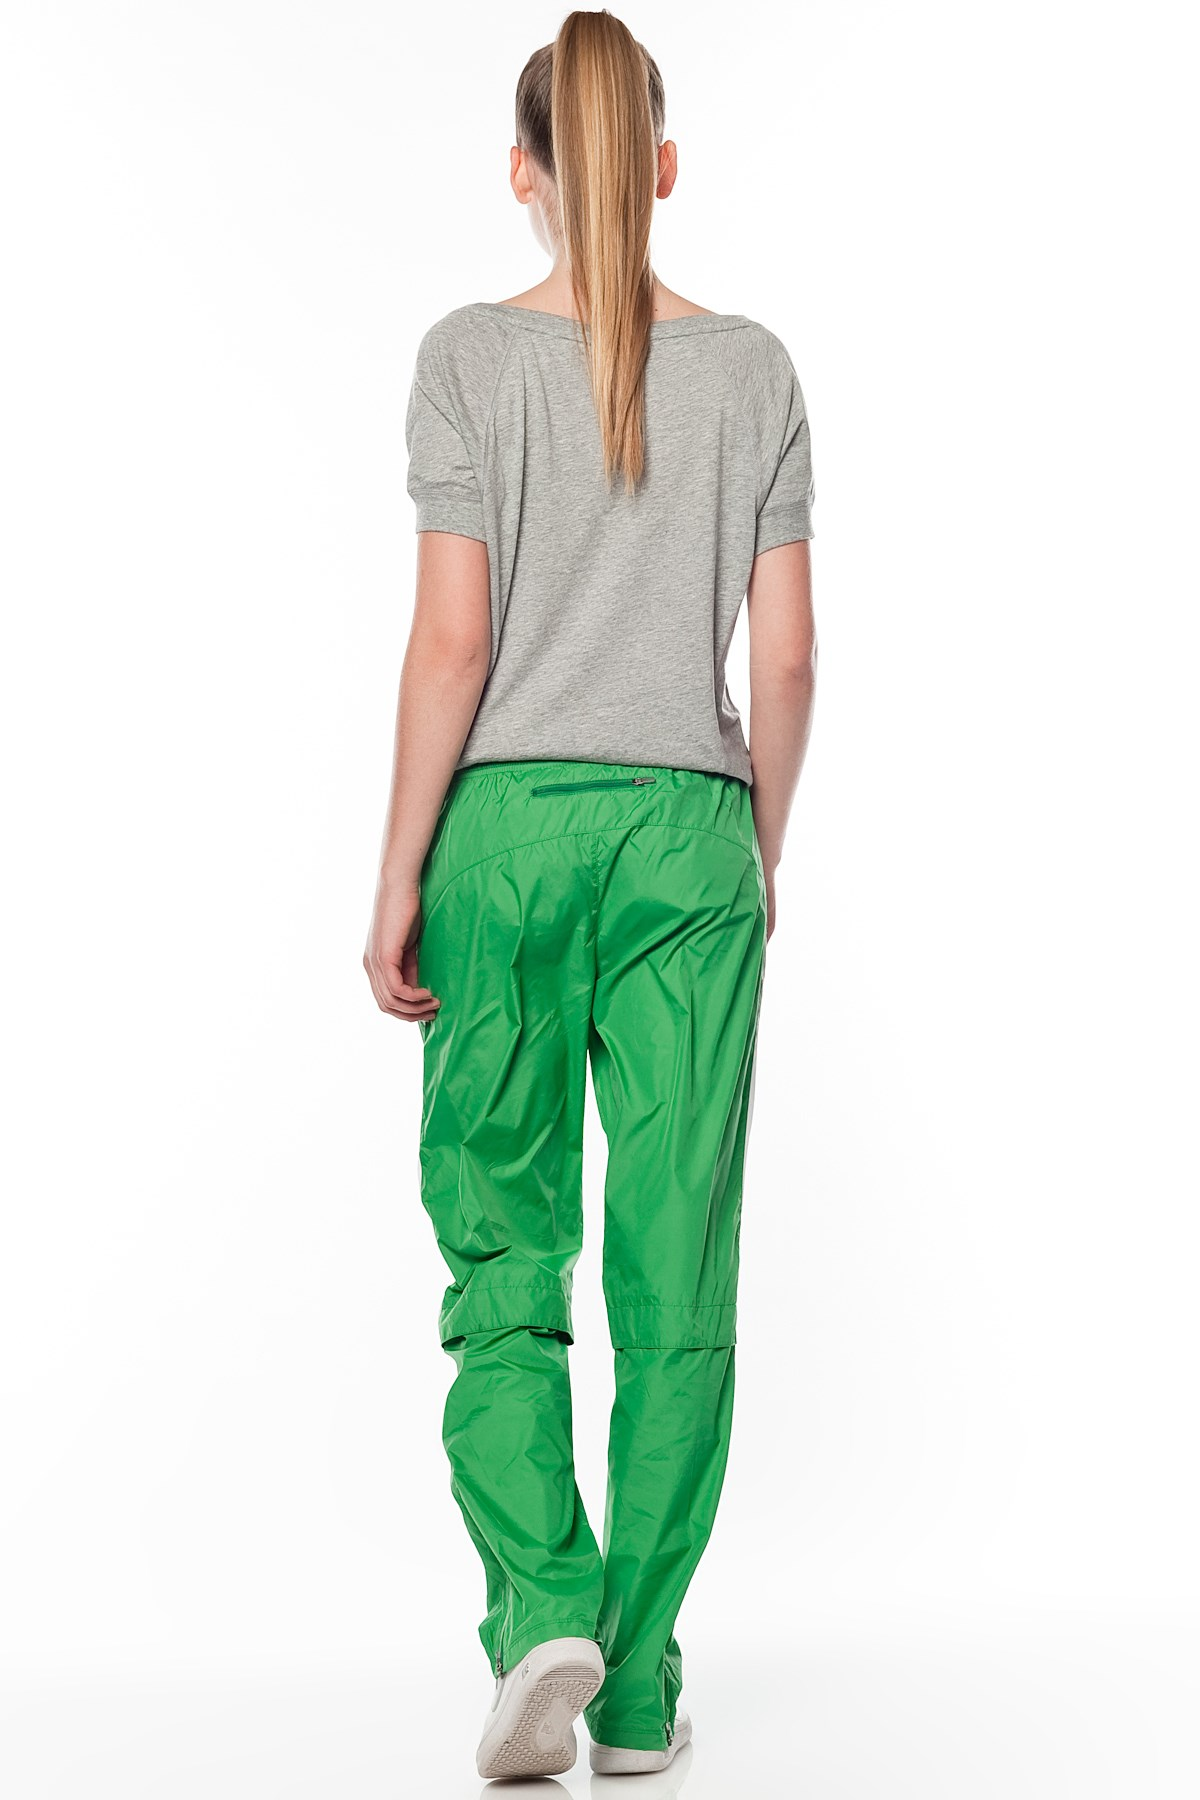 Green Nike Windfly Pants